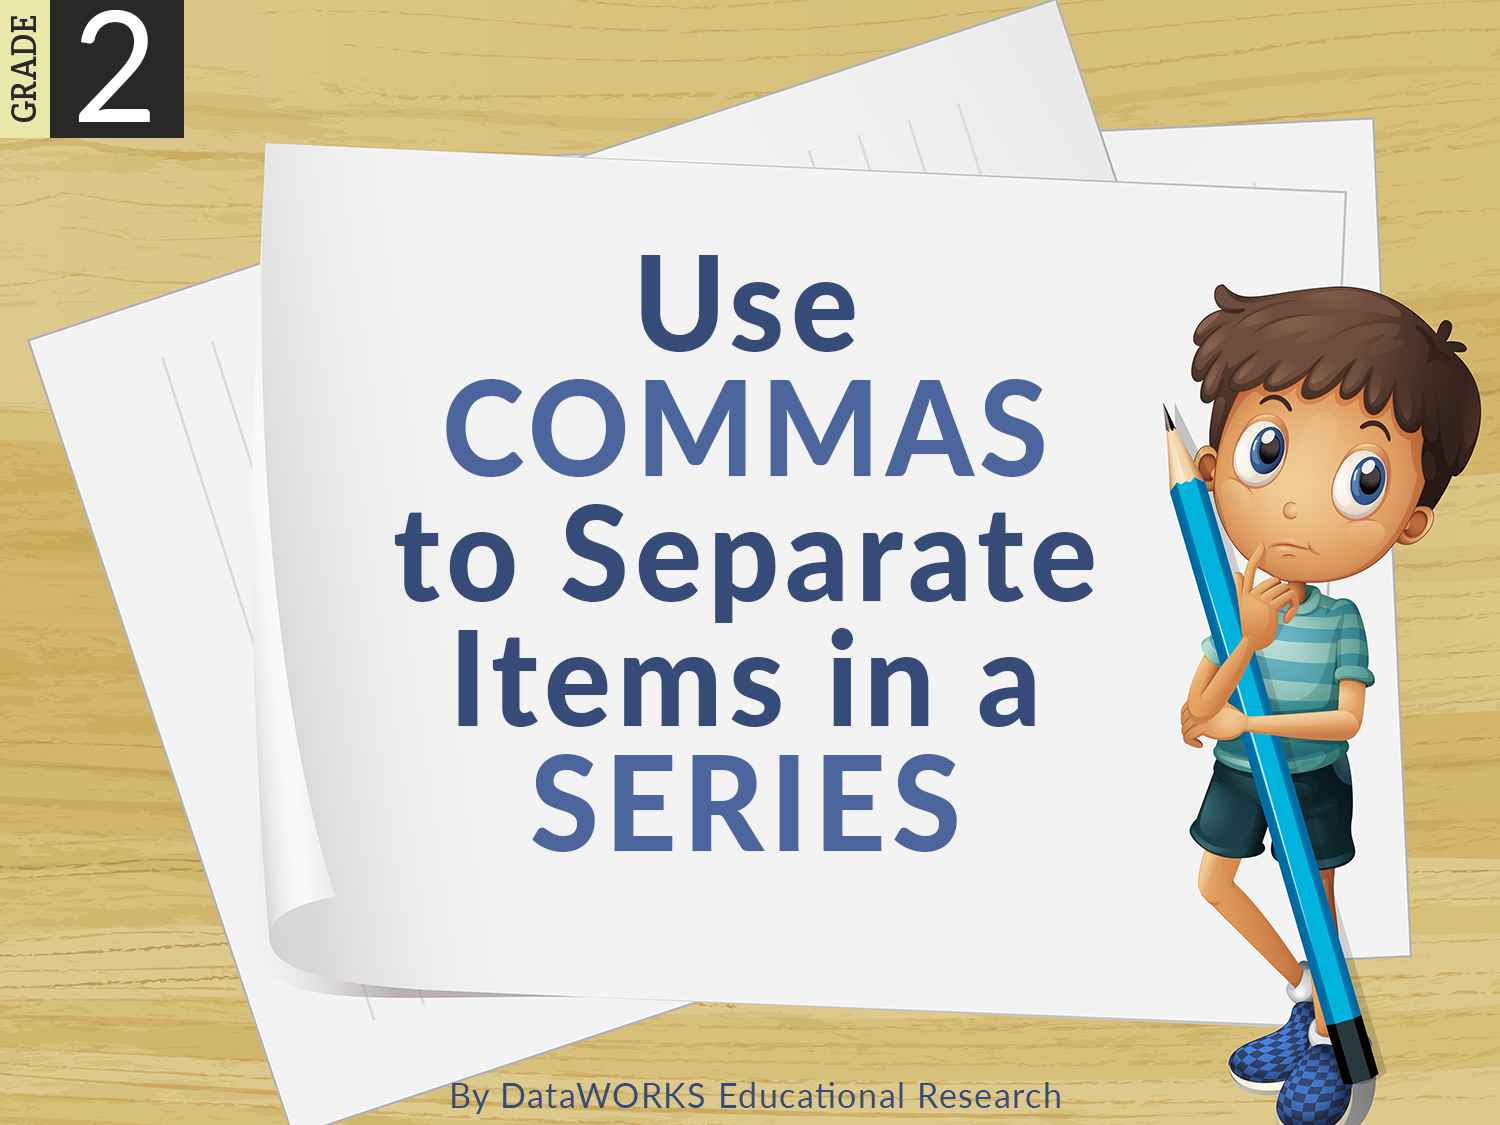 Lessons tagged with punctuation.